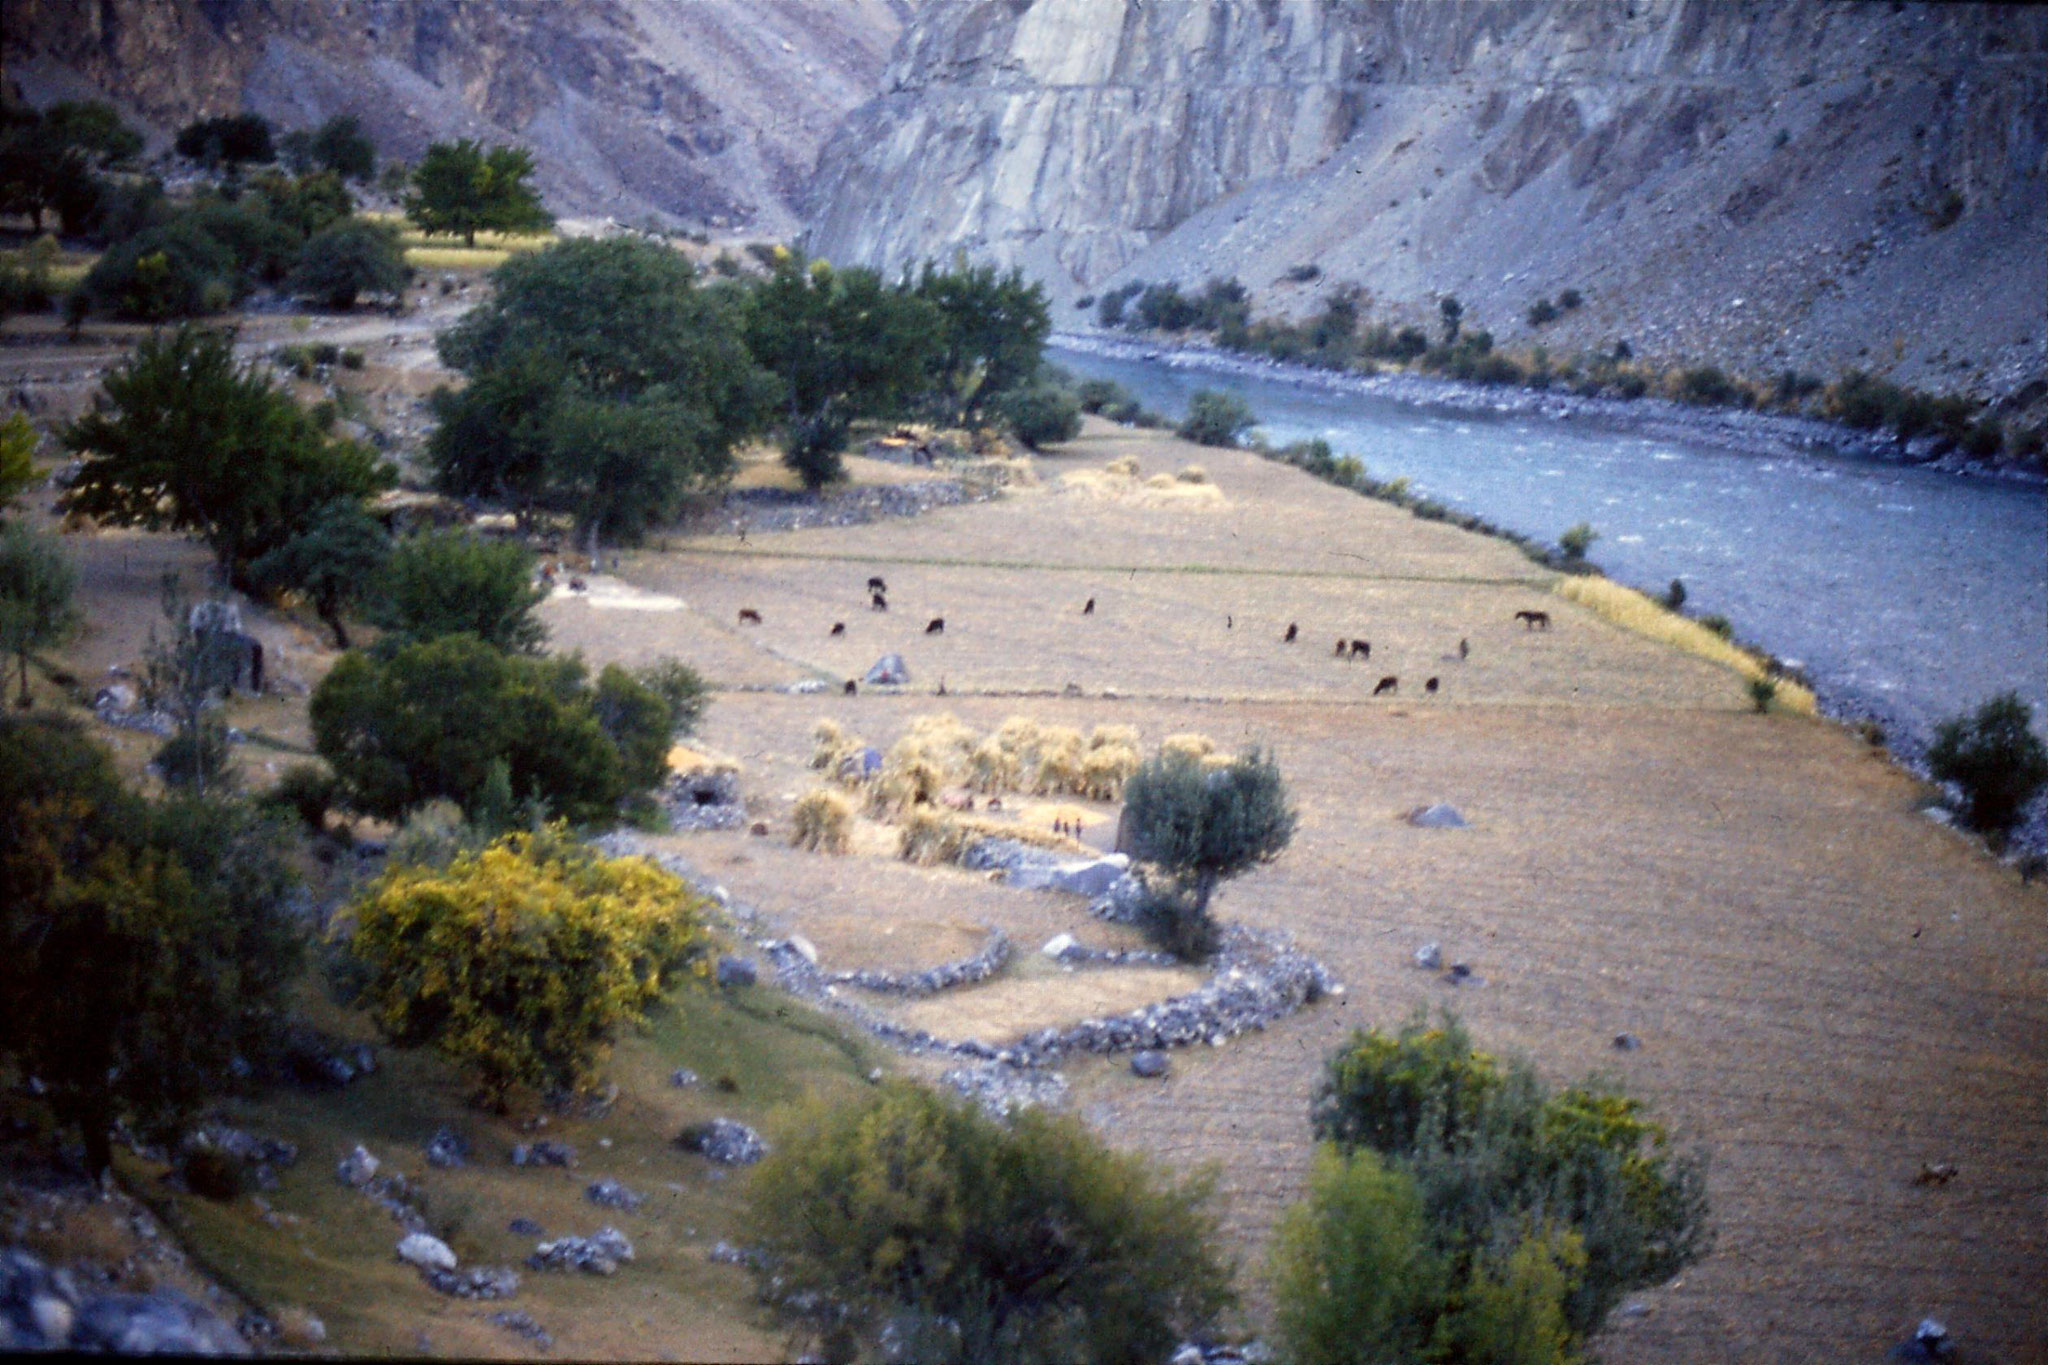 25/10/1989: 32: Ghizer river, harvest